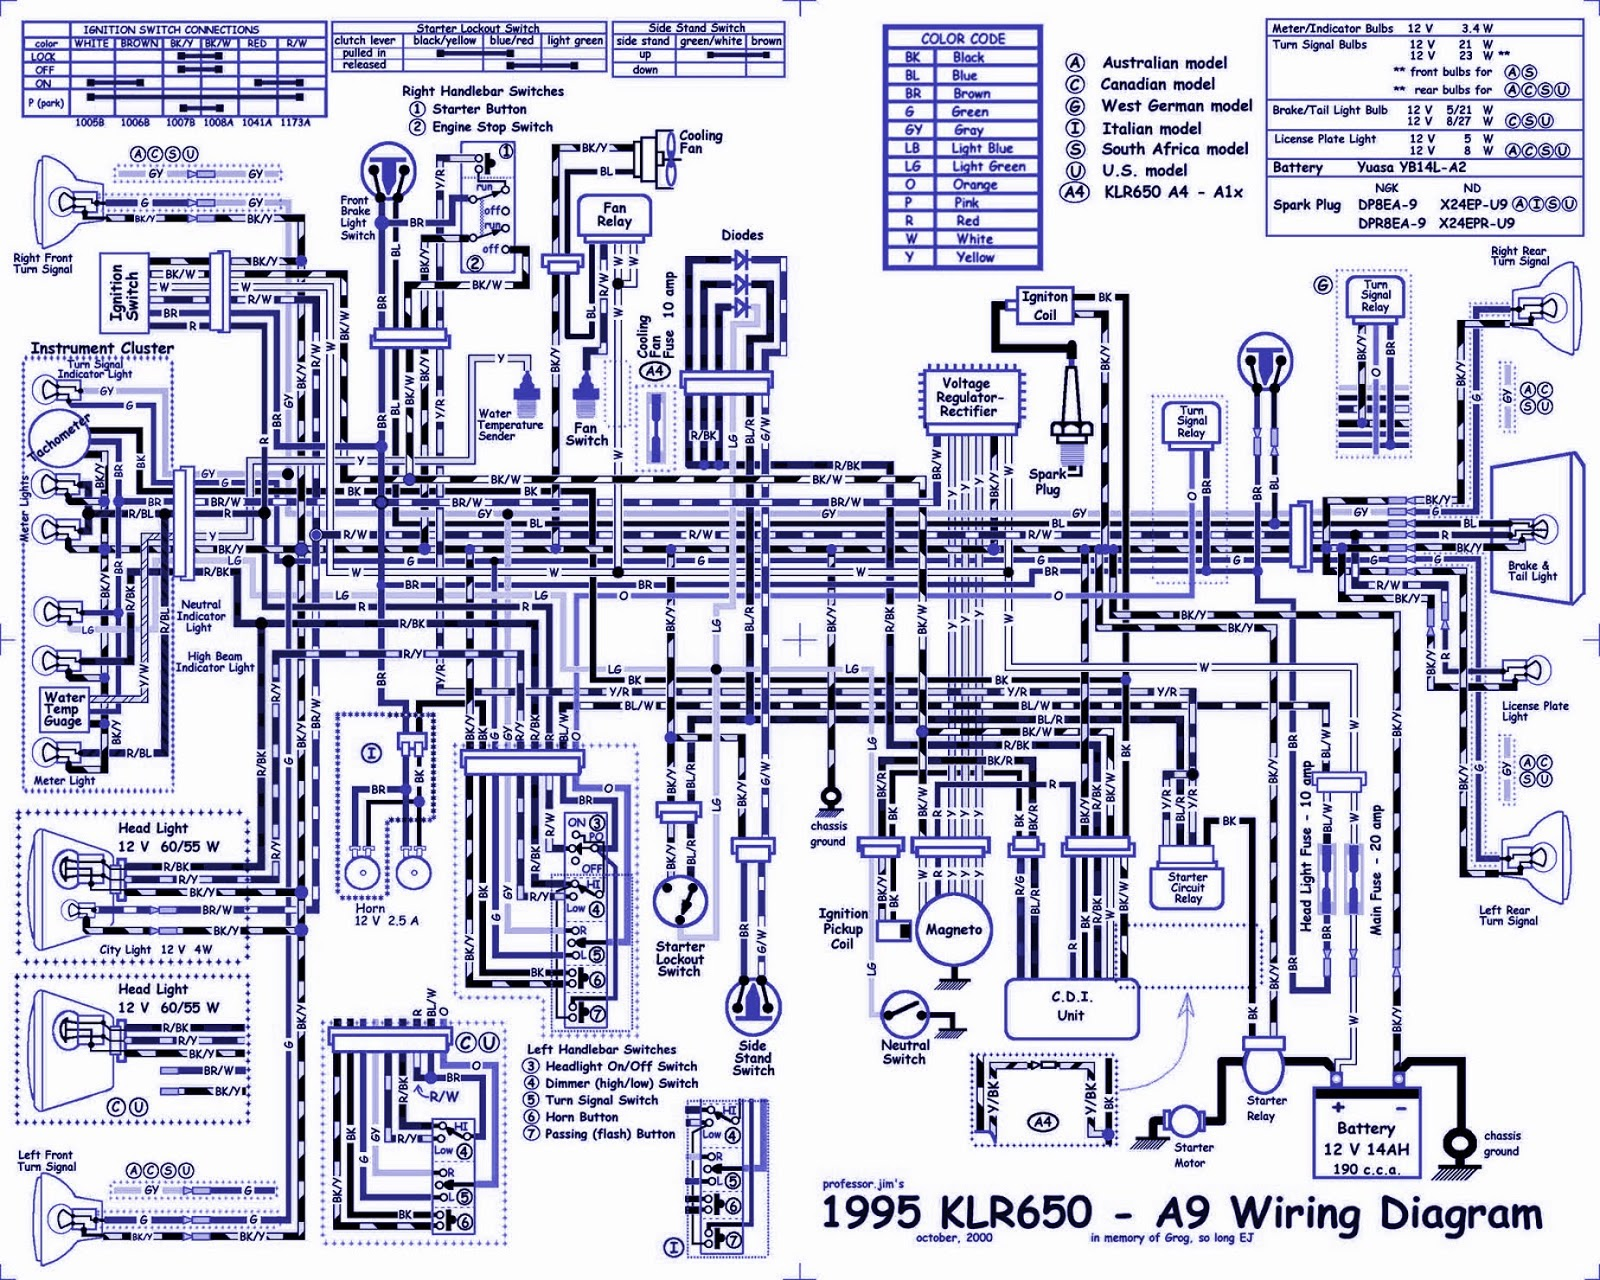 Chevrolet Monte Carlo Electrical Wiring Diagram on 2001 Chevy Monte Carlo Ss Diagram